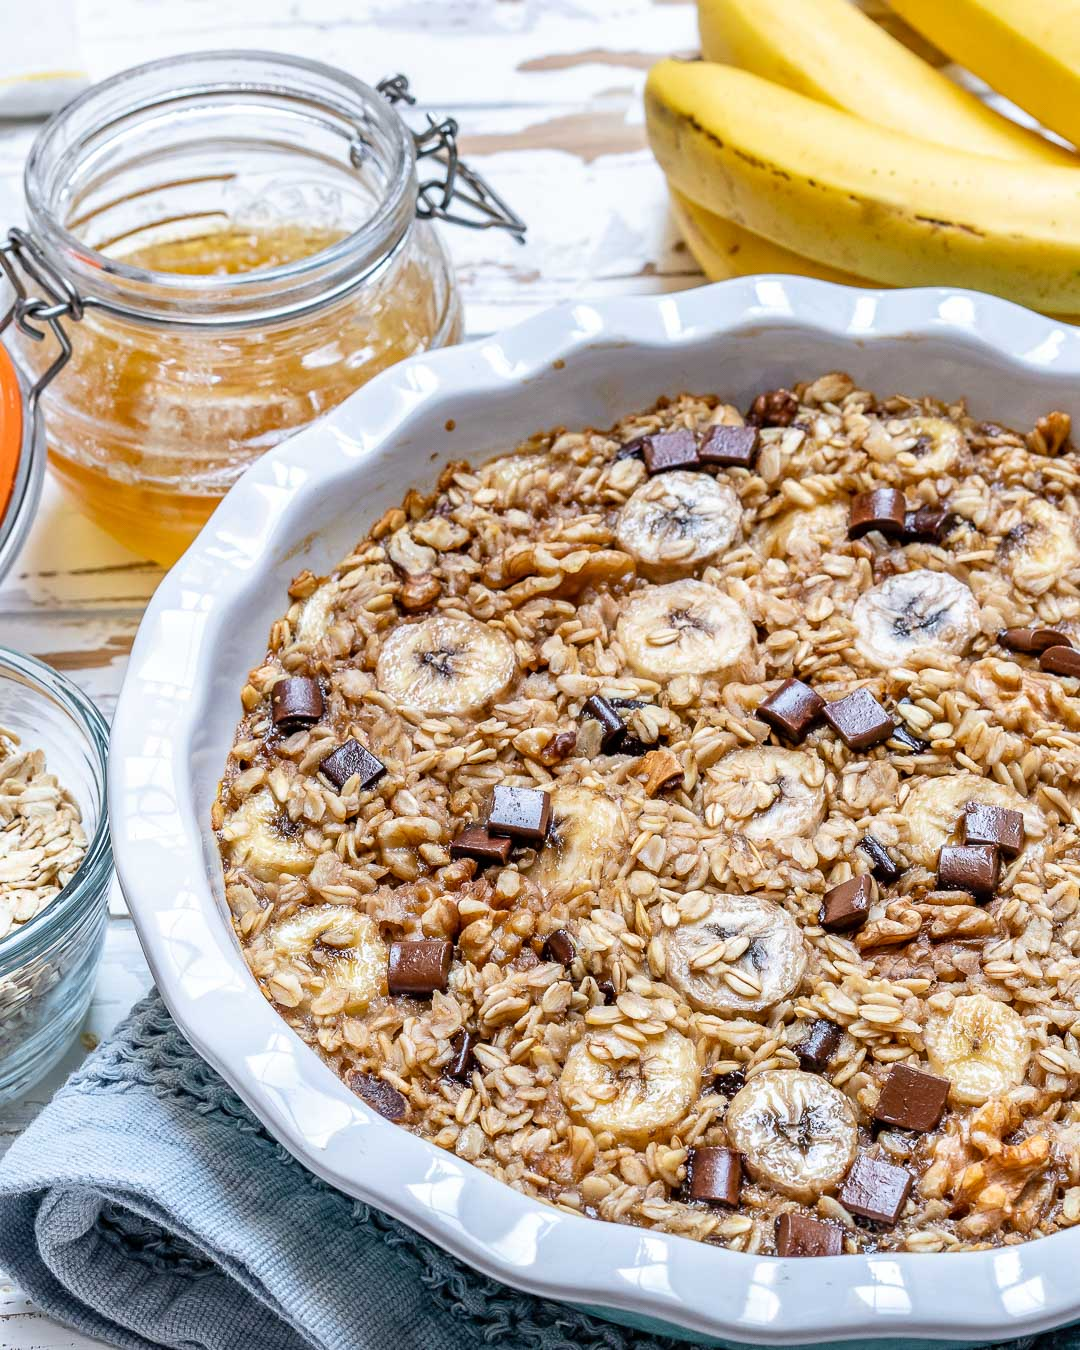 Try Our Chocolate Chip Banana Oatmeal Recipe!